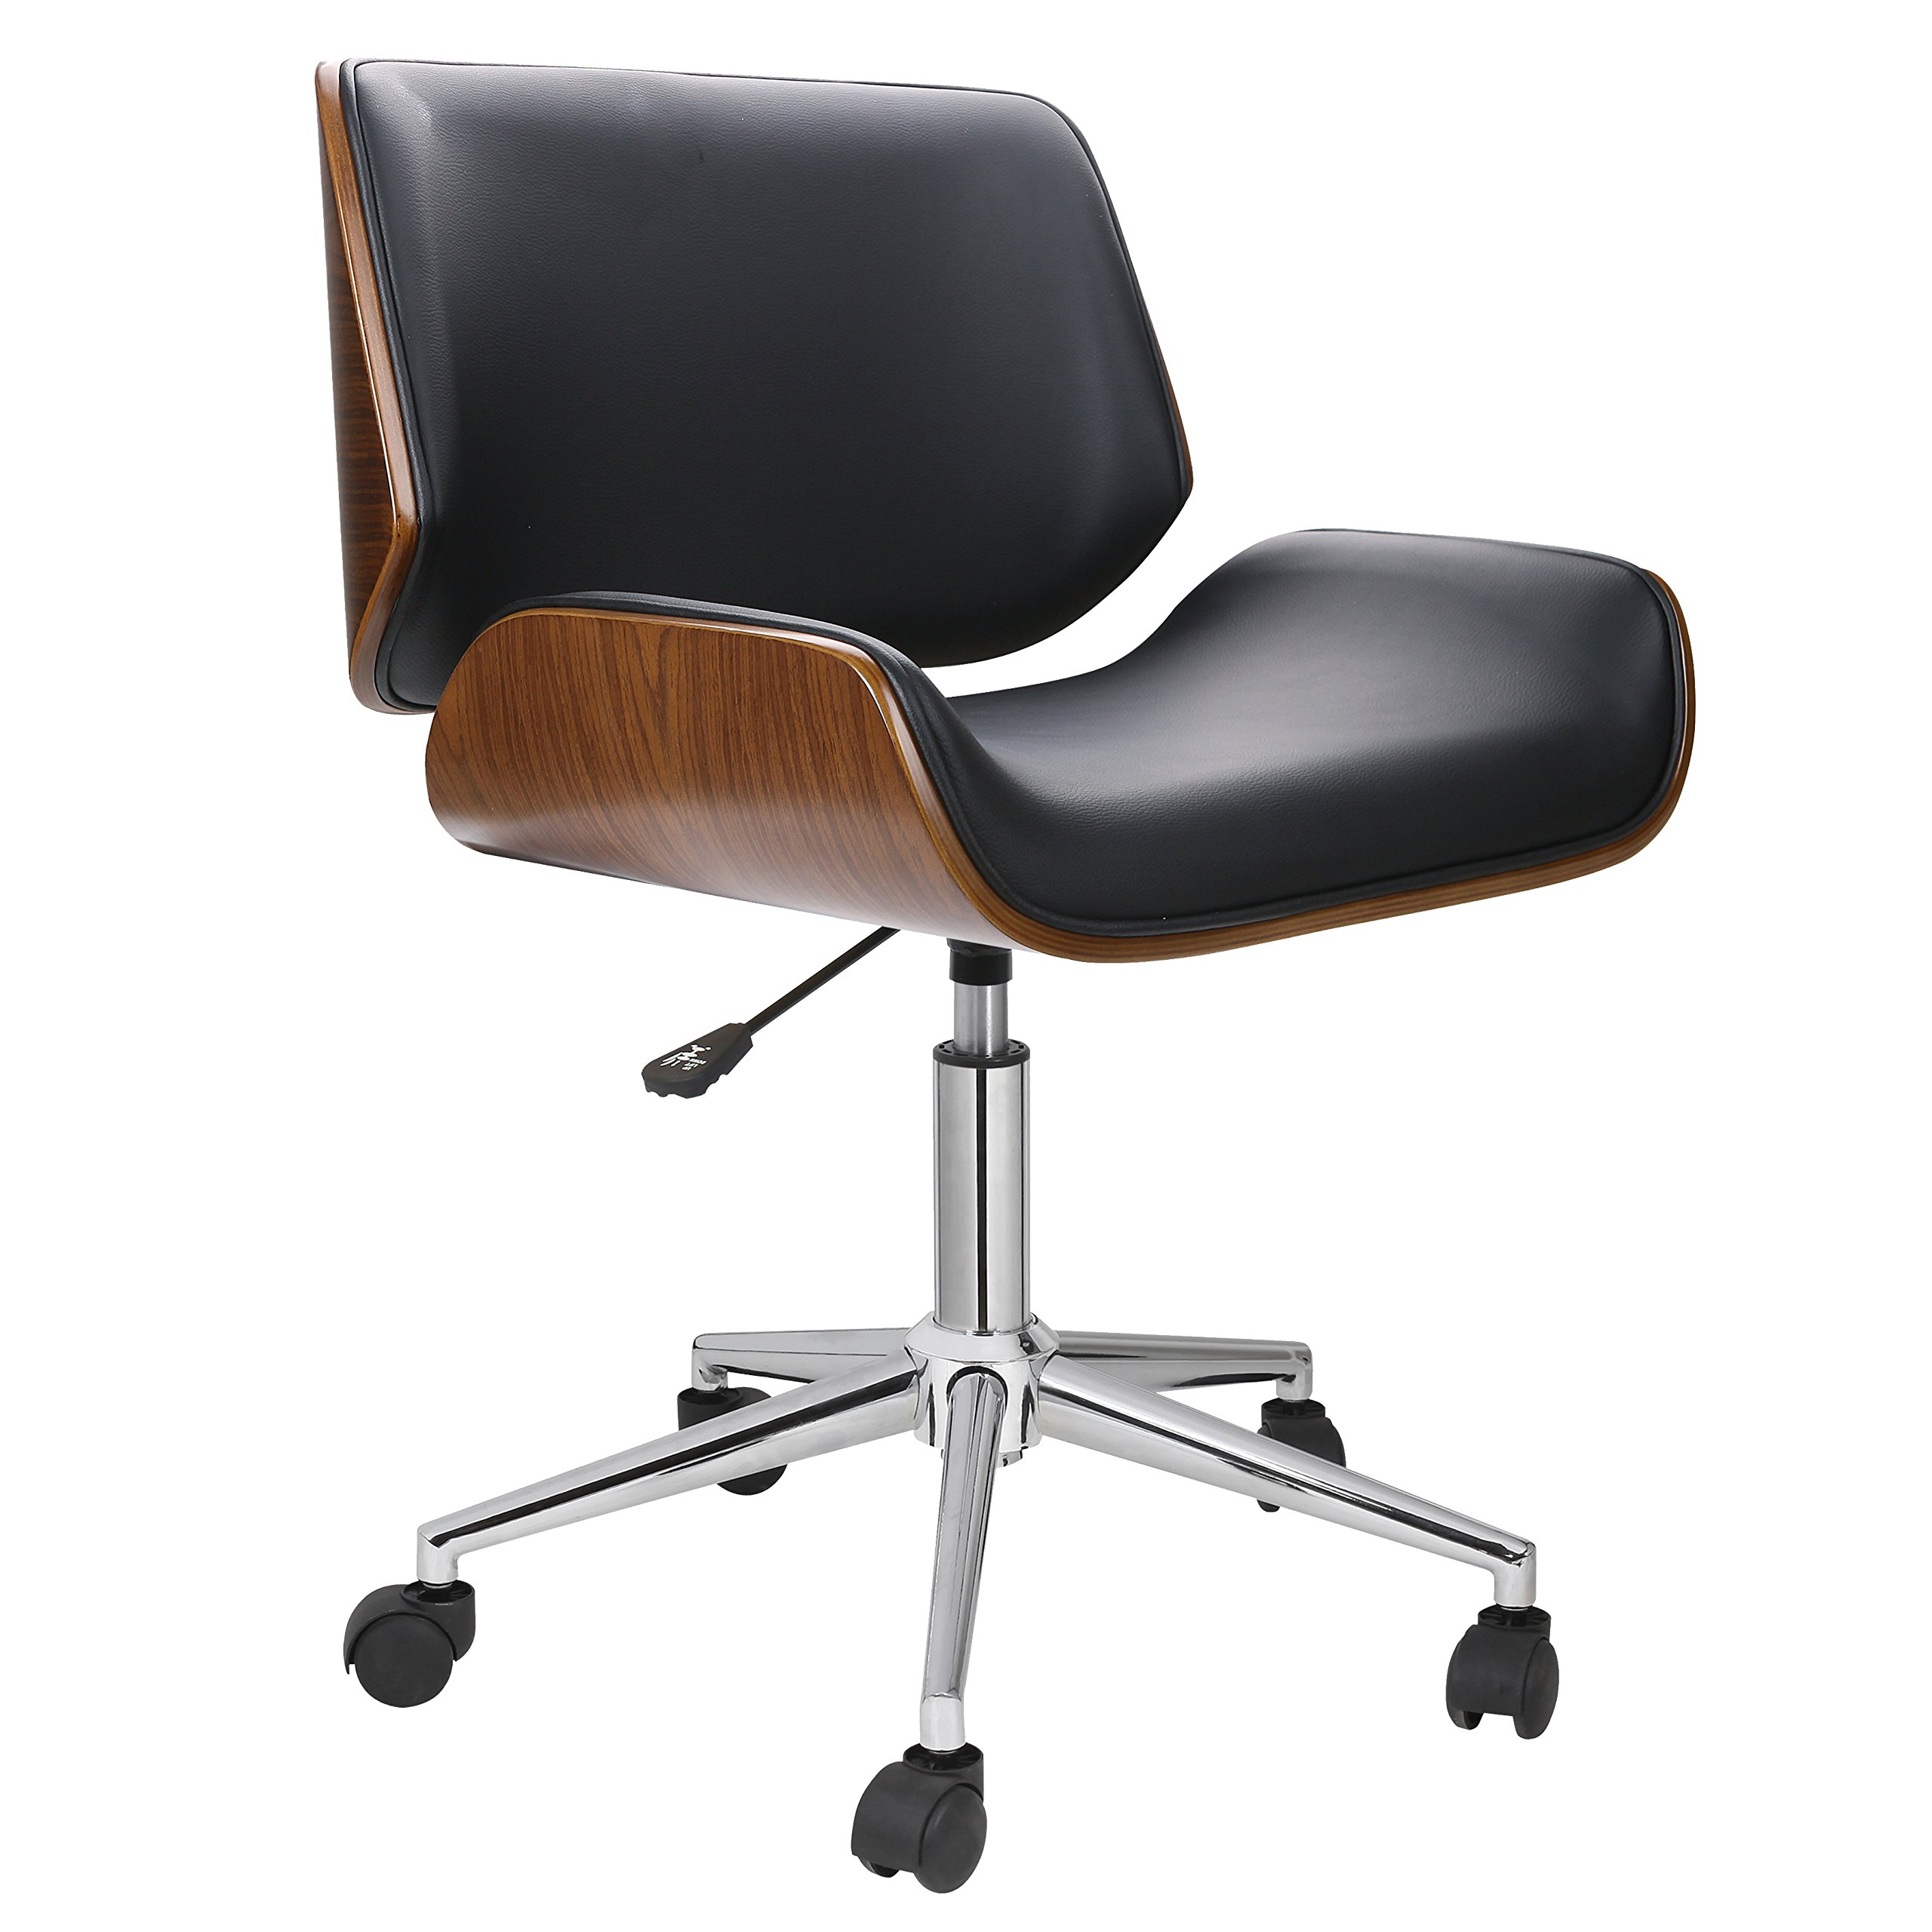 Porthos Home KCH019A BLK Dove Office Chairs in Mid-Century Modern Design with Leather Upholstery, Wooden Accents, Stainless Steel Legs, Roller Wheels & Adjustable Height, Black by Porthos Home